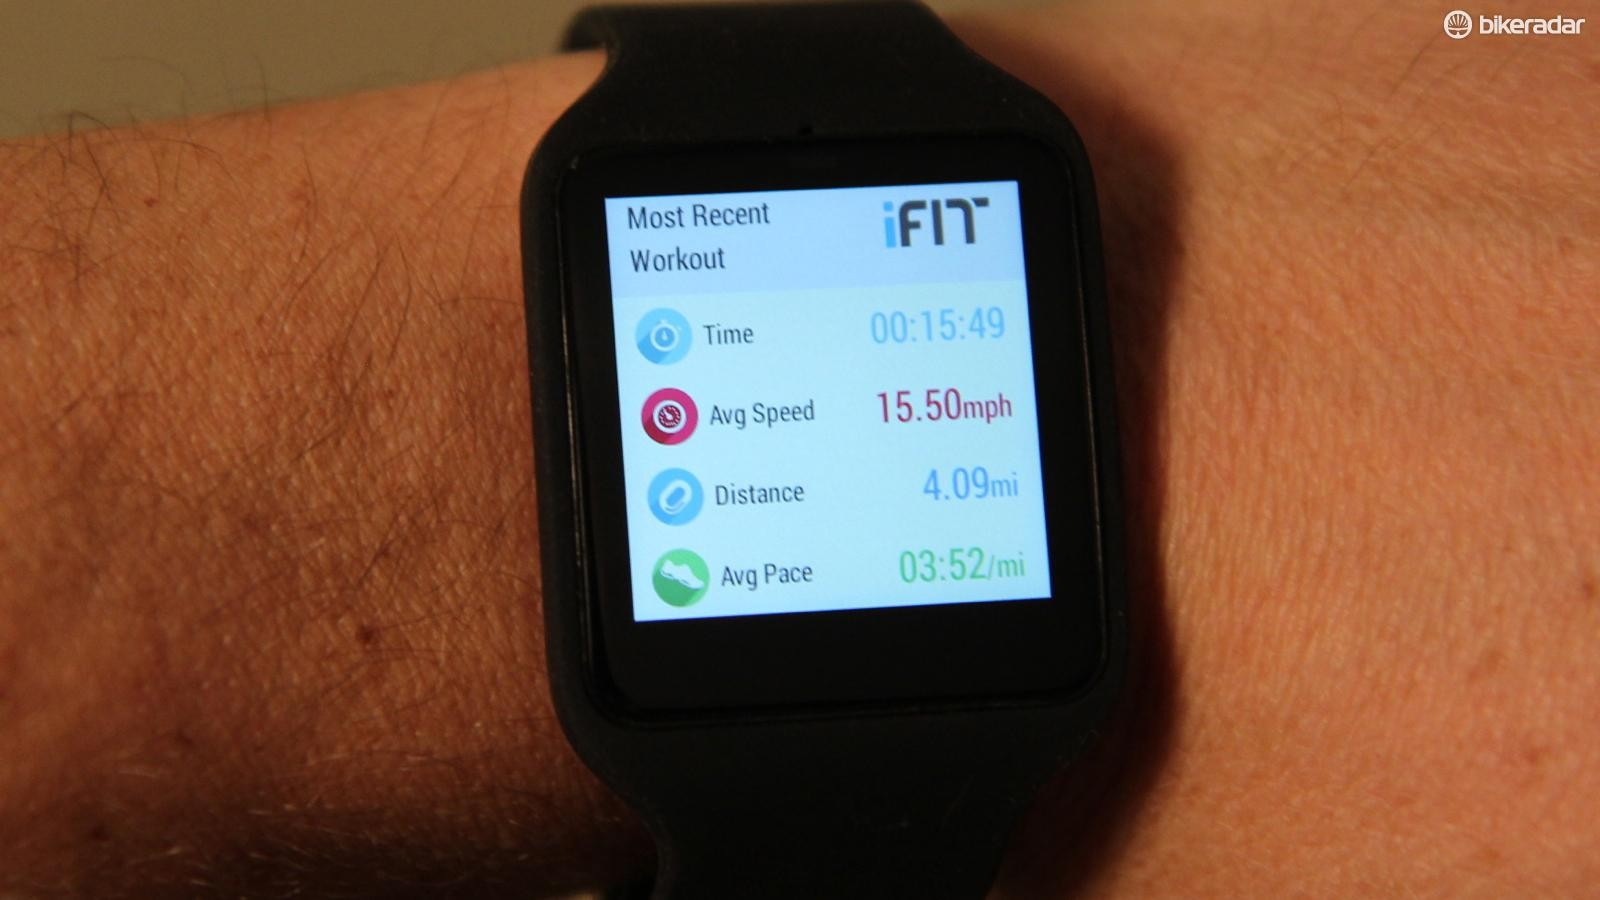 Using the Sony SmartWatch 3's built-in GPS, iFit operates as a very basic running watch